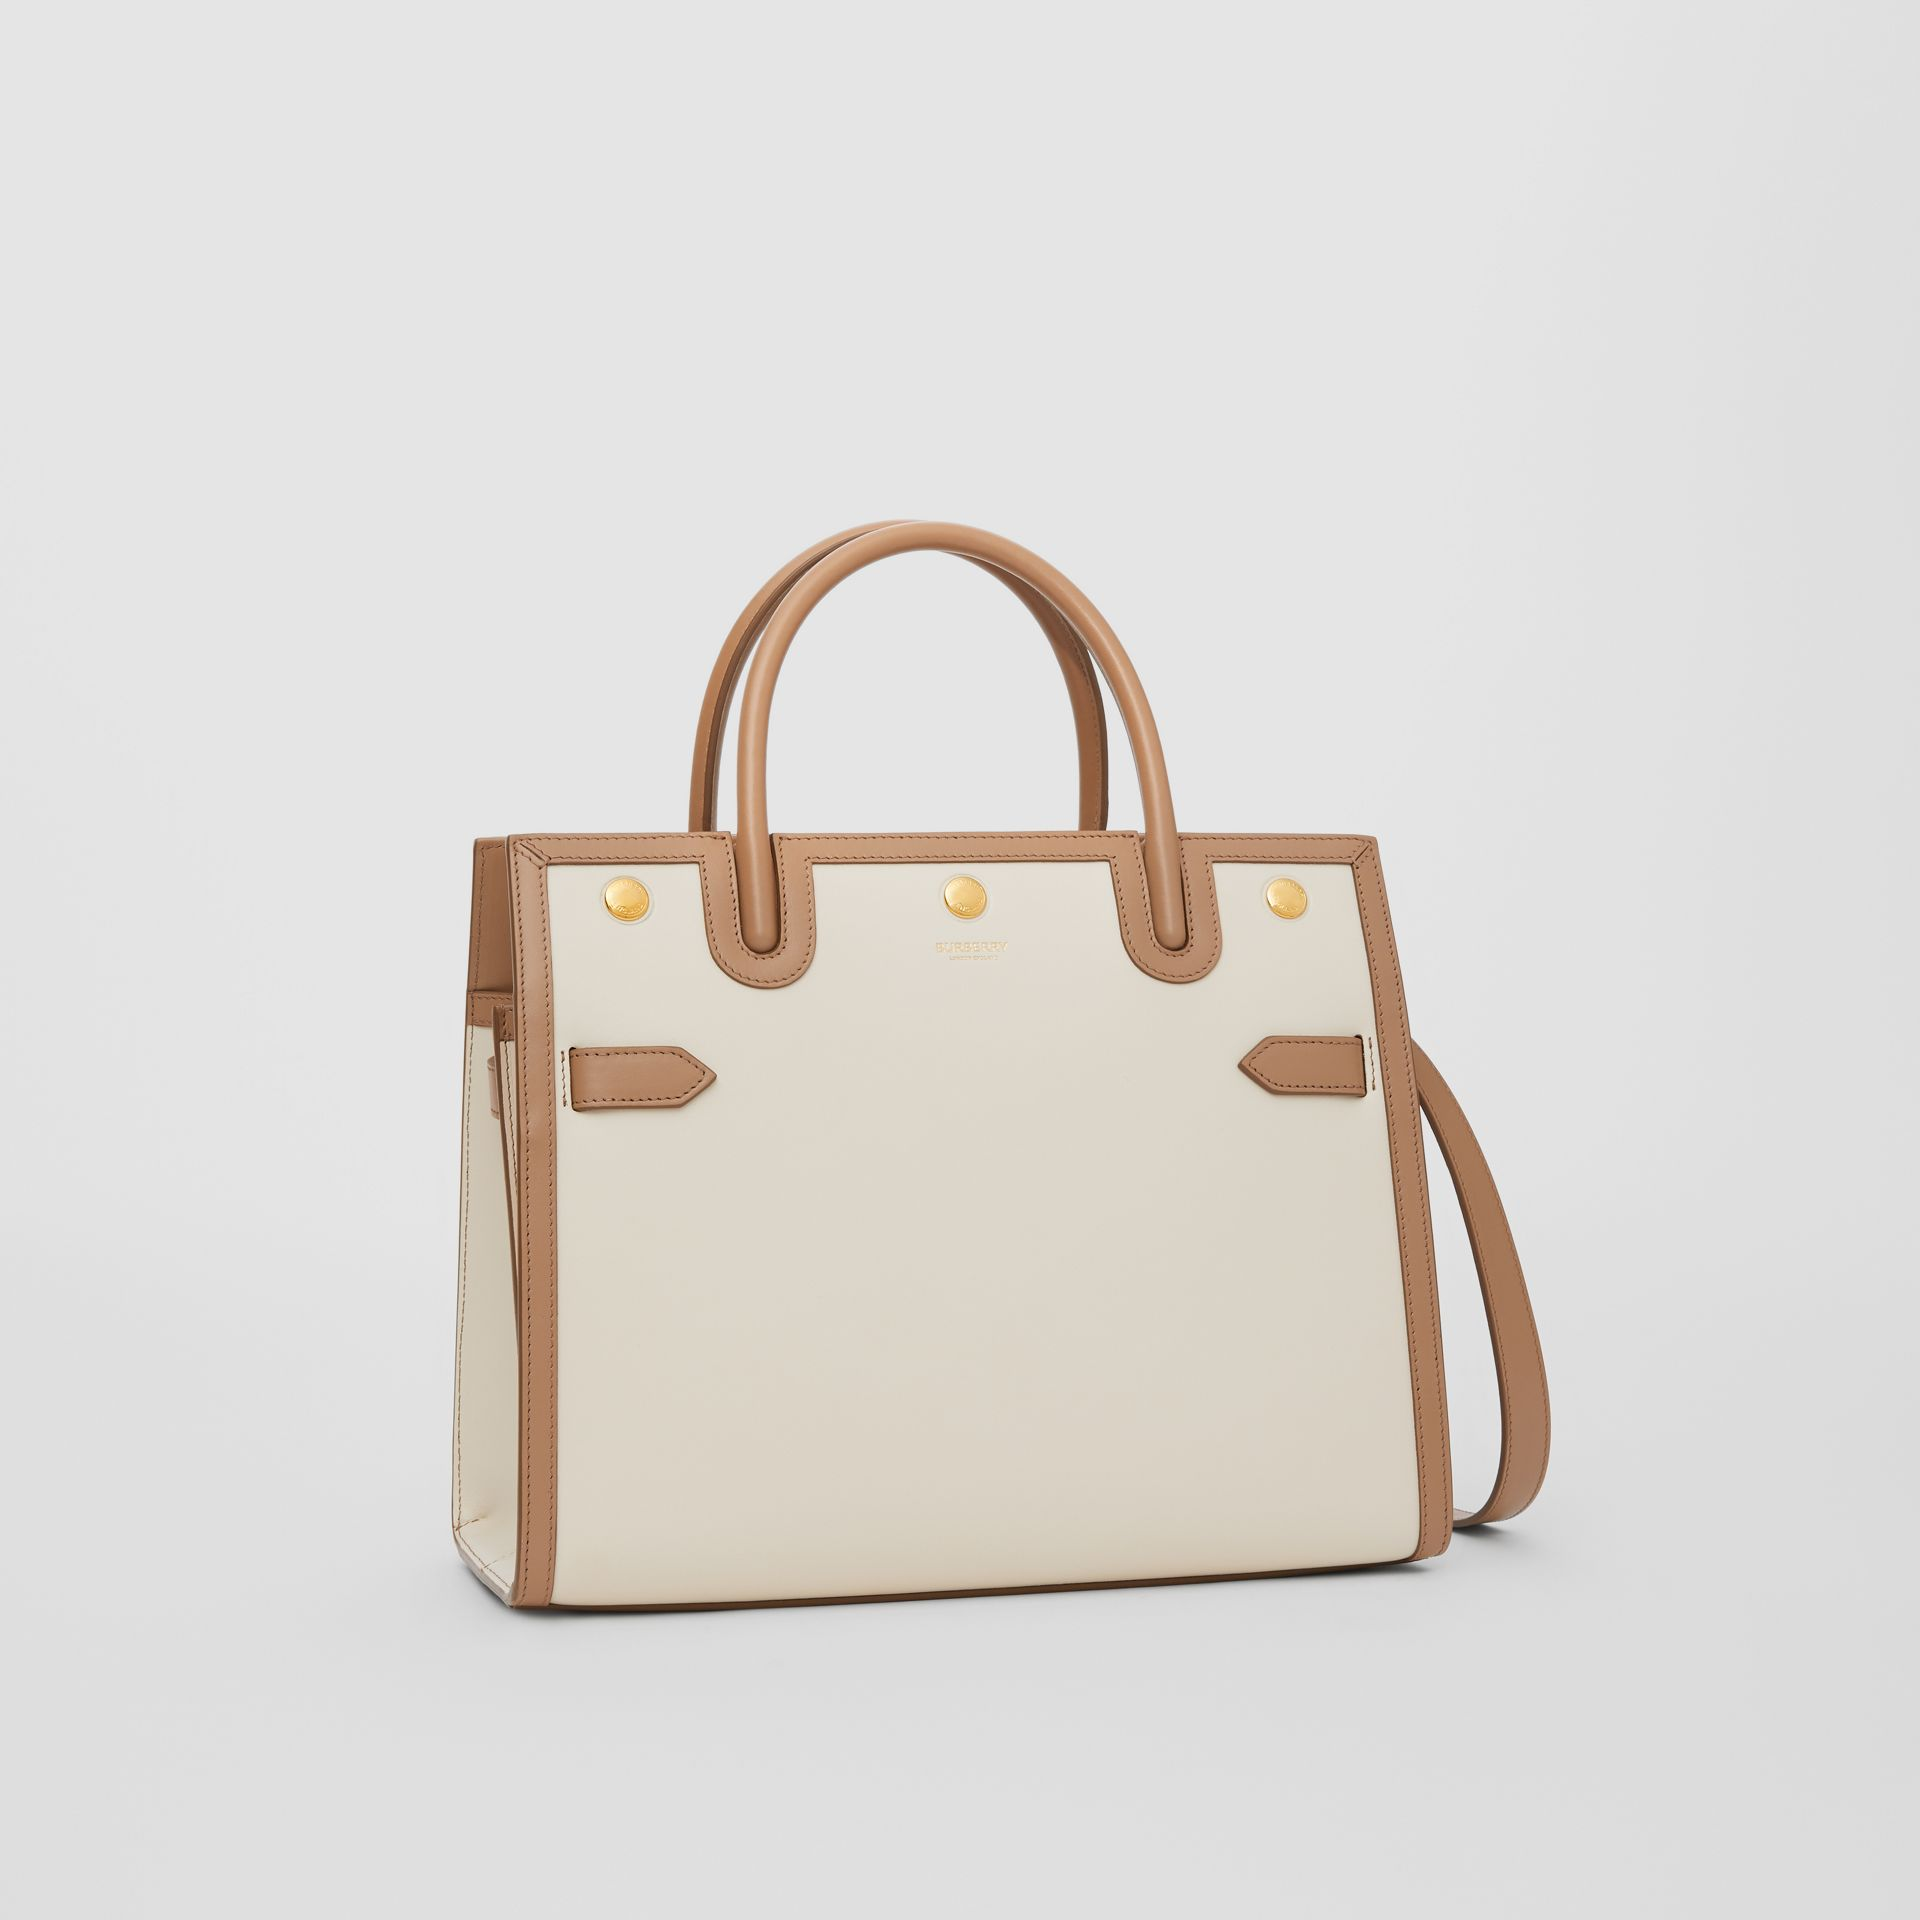 Small Leather Two-handle Title Bag in Buttermilk/camel - Women | Burberry Canada - gallery image 6